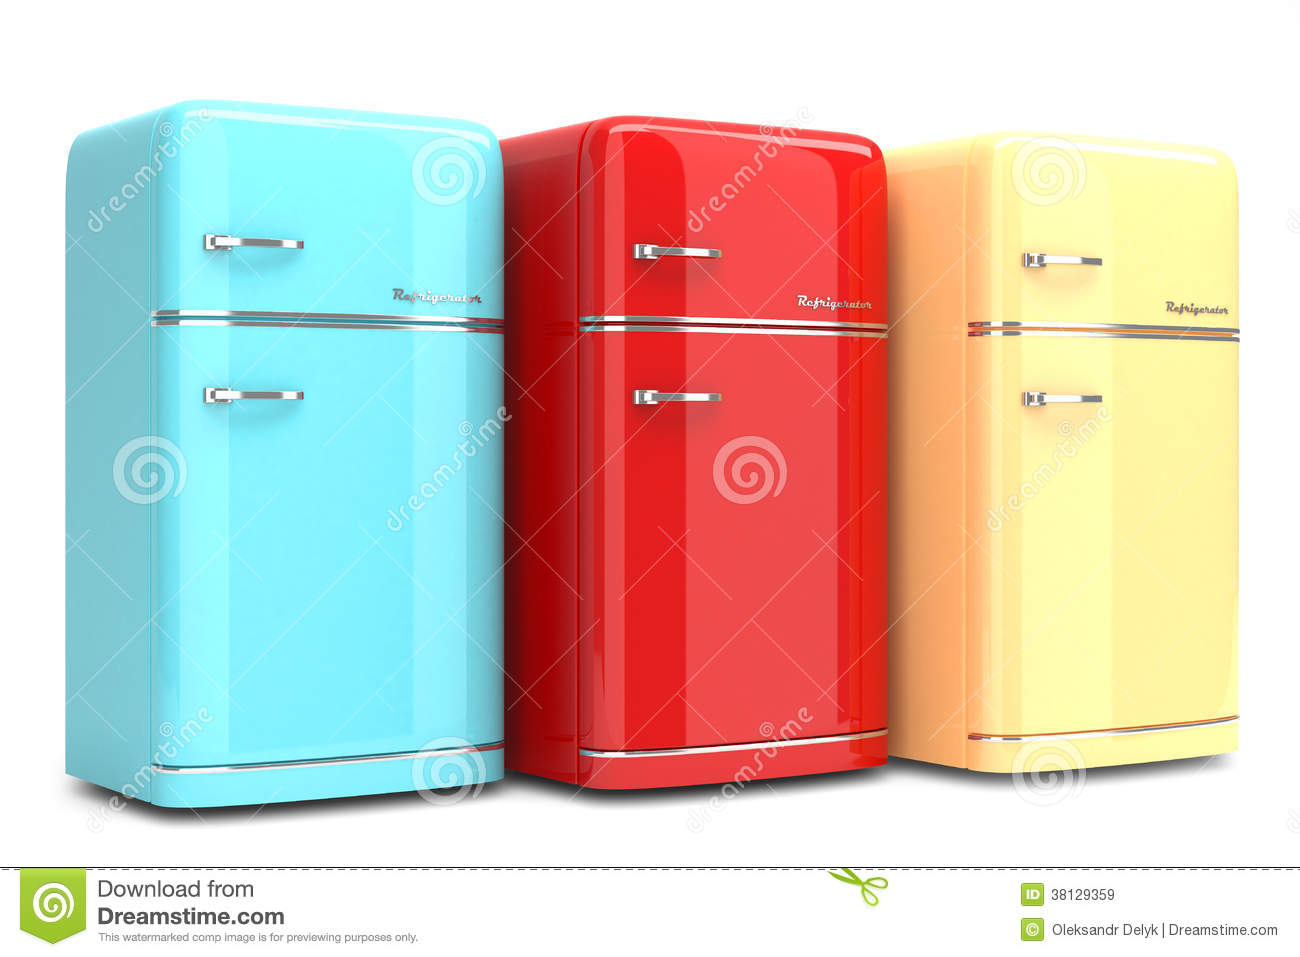 Retro Refrigerators Royalty Free Stock Images  Image